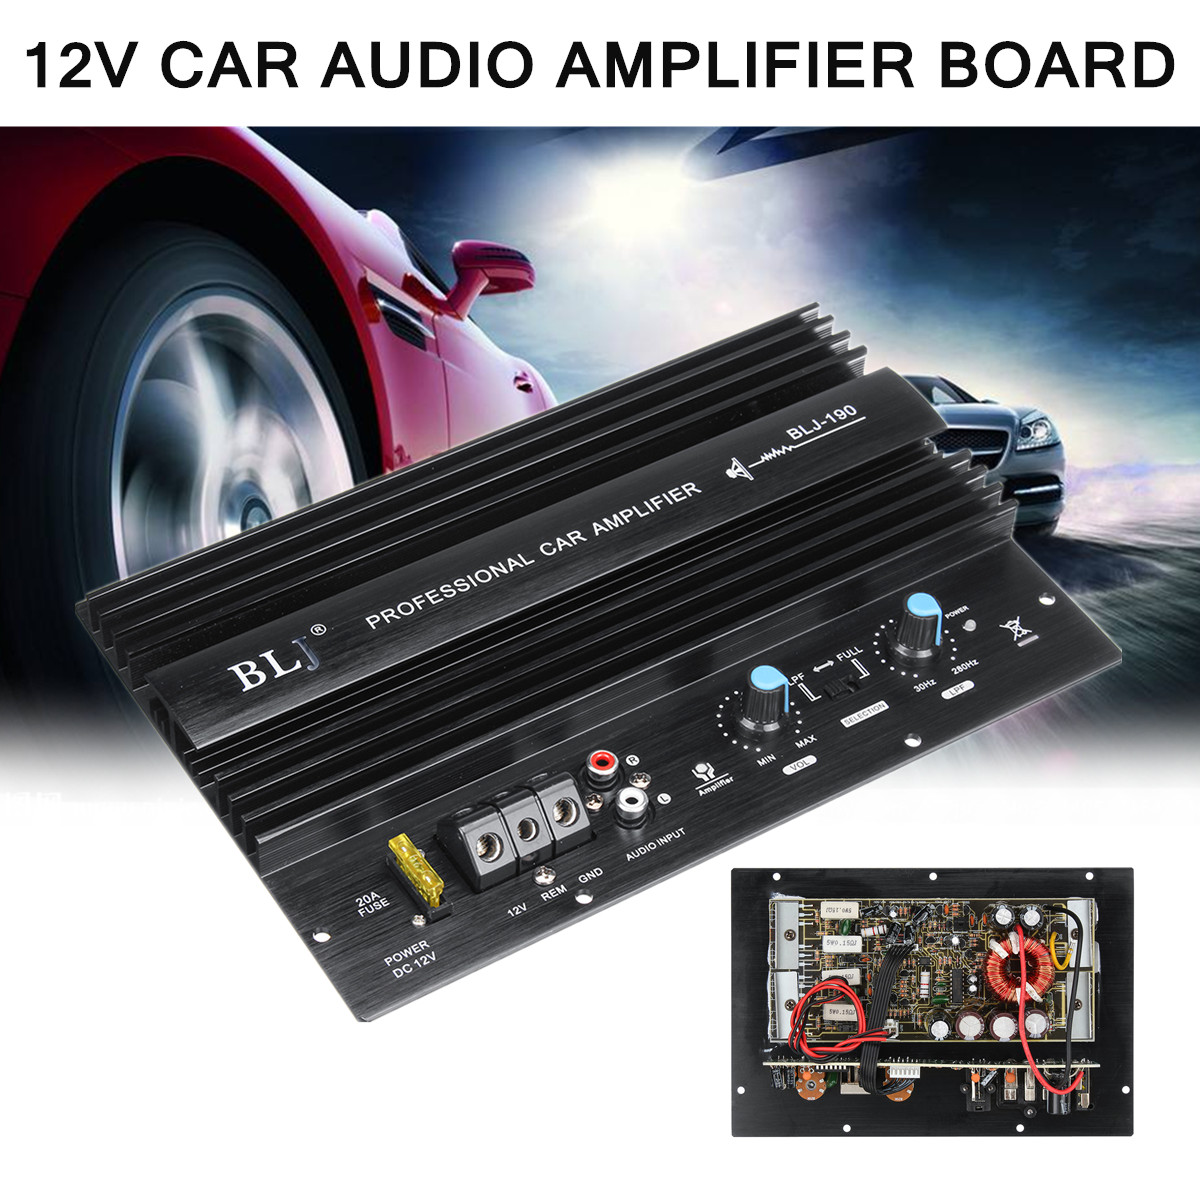 12V 1000W Powerful Bass Subwoofer 105dBA Mono Car Audio High Power Amplifier Amp Board Thermal Overload Protect Powerful Bass kroak 12v 600w car amplifier board powerful subwoofer car audio amplifier mono stereo power amplifier bass black